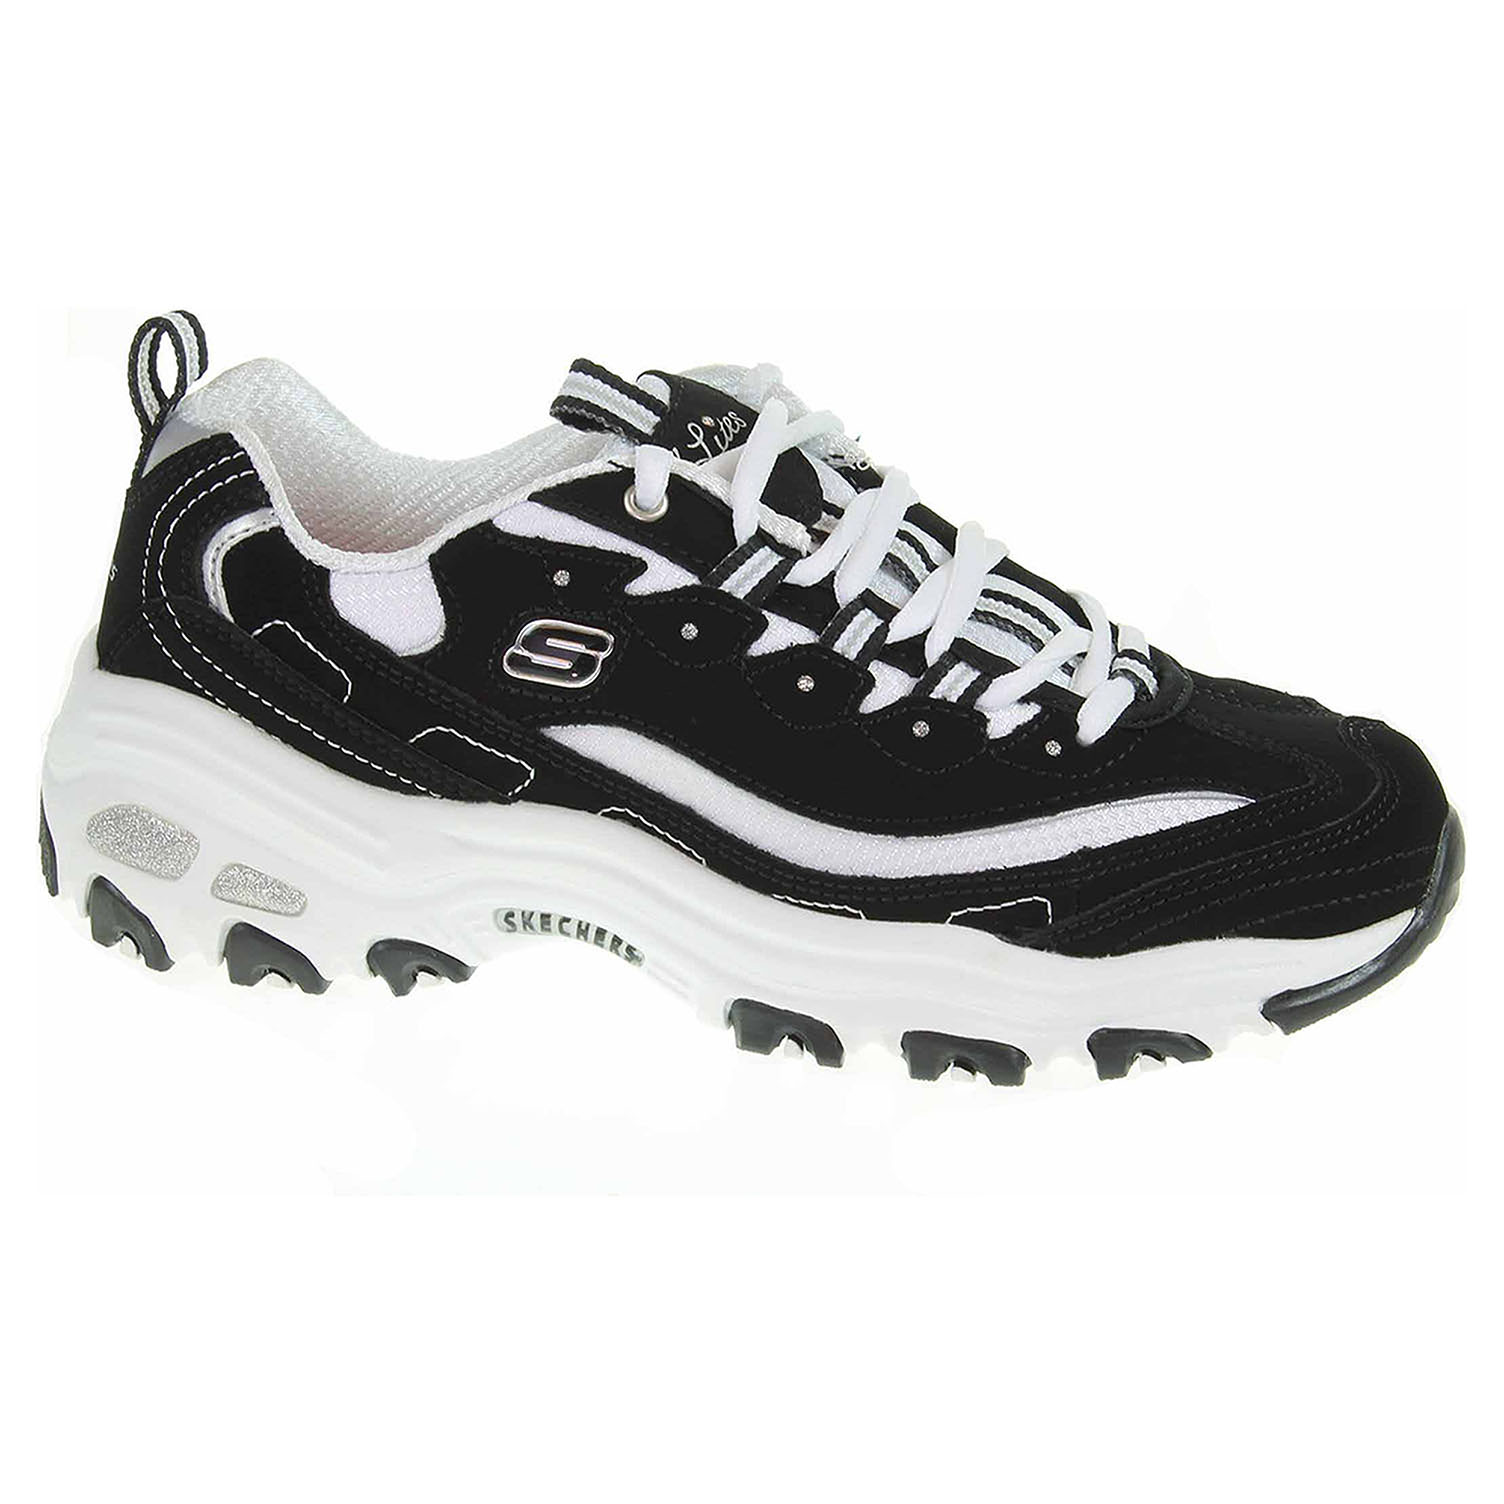 Skechers D´Lites - Biggest Fan black-white 11930 BKW 39